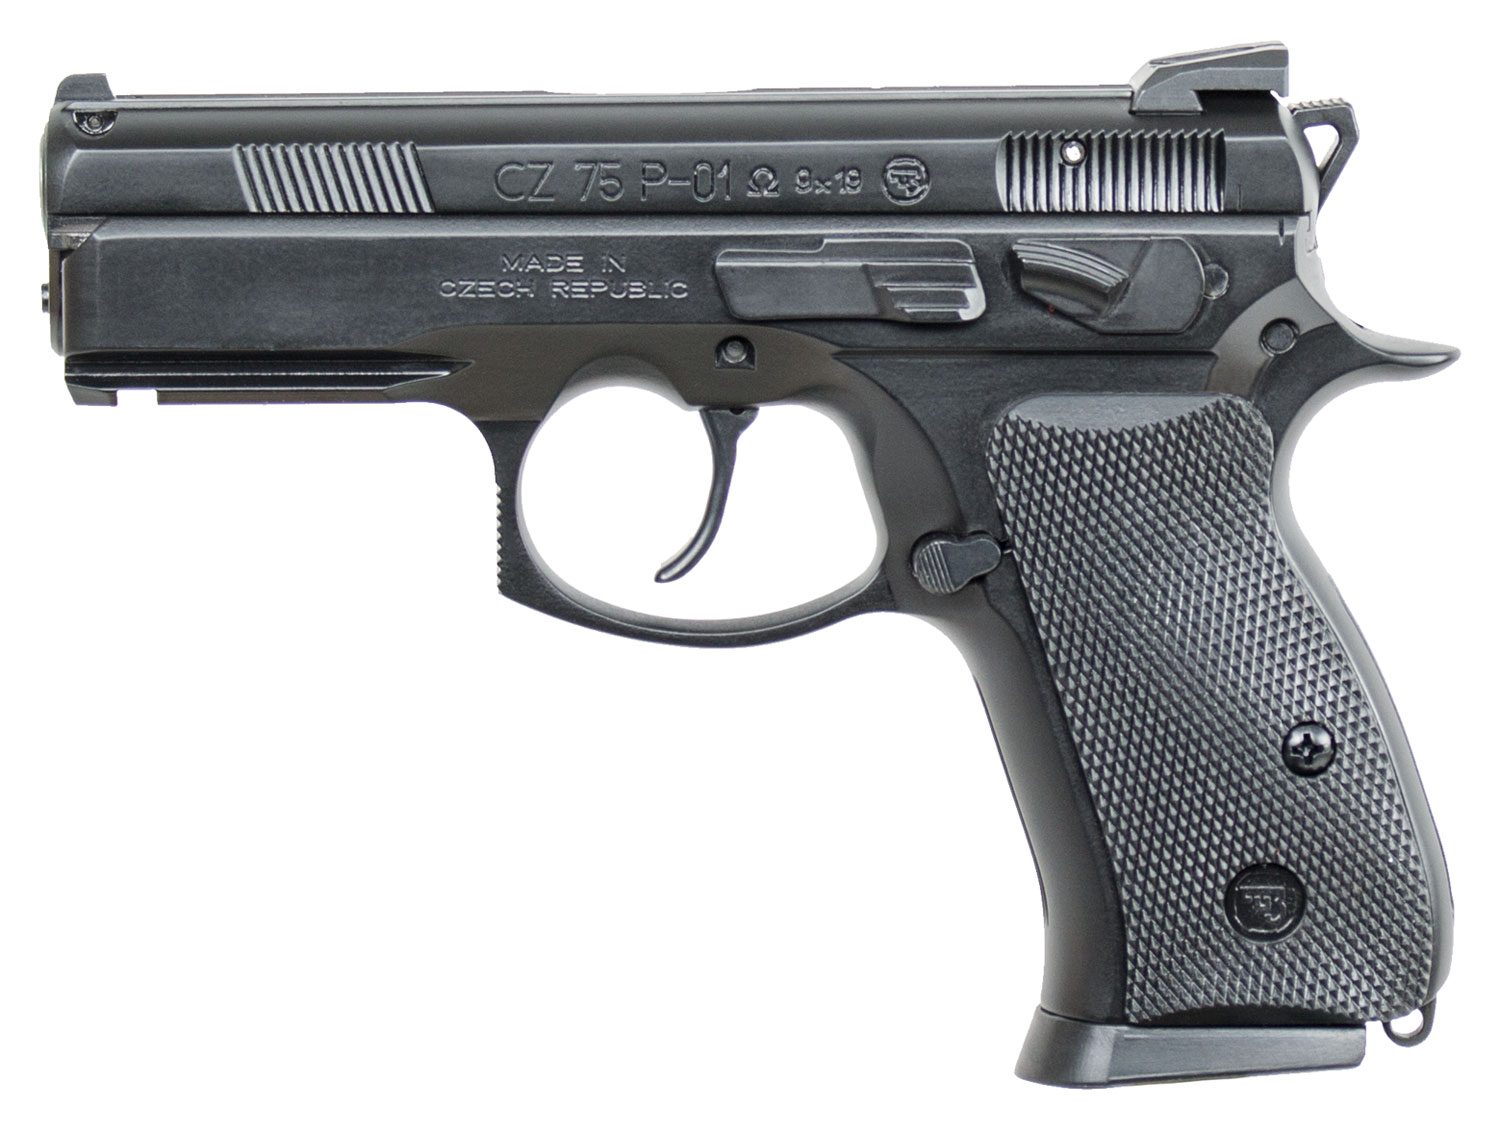 CZ 91229 P-01 Omega Single/Double 9mm 3.8